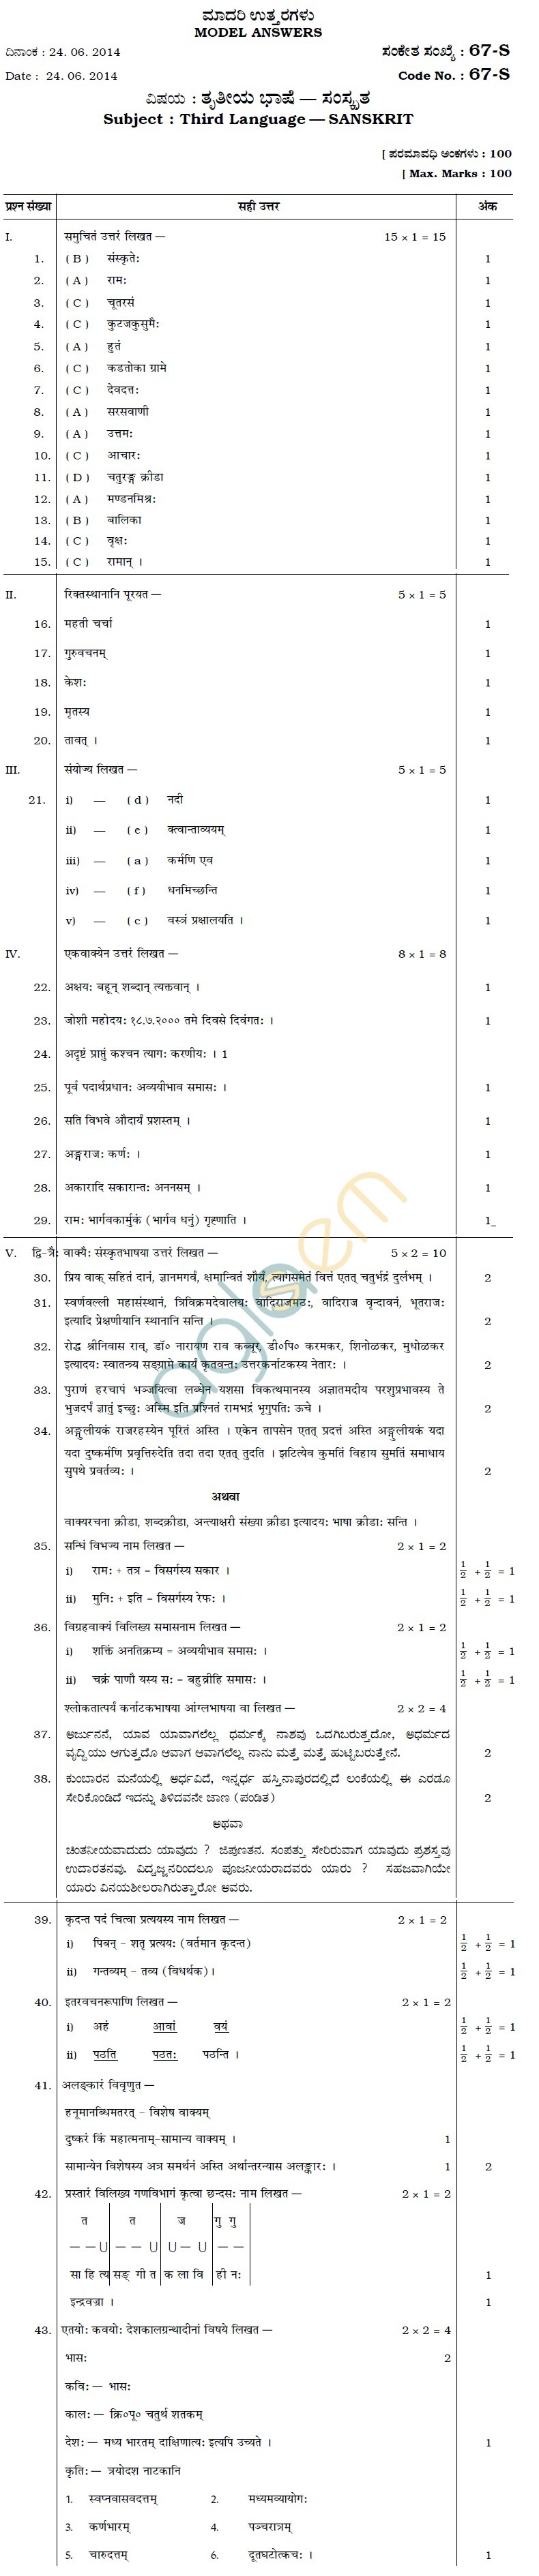 Karnataka SSLC Solved Question Paper June 2014 - Sanskrit III